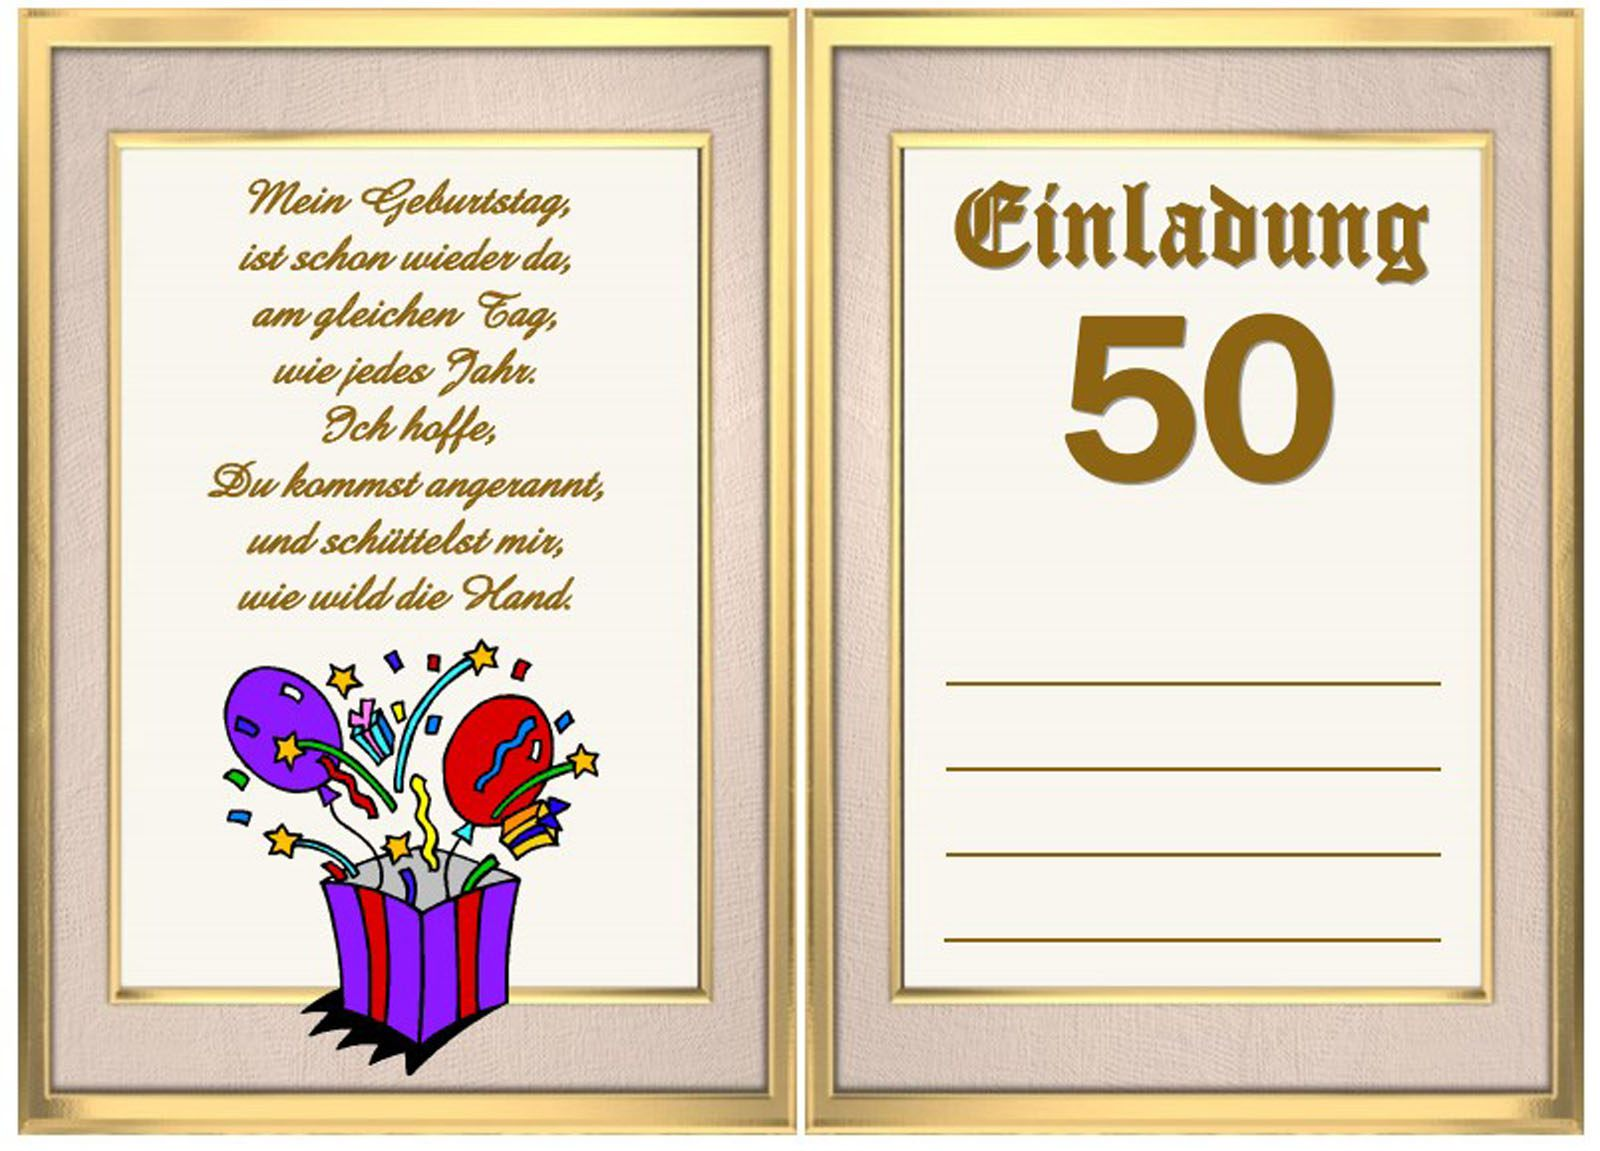 More Article From Einladung Geburtstag 50